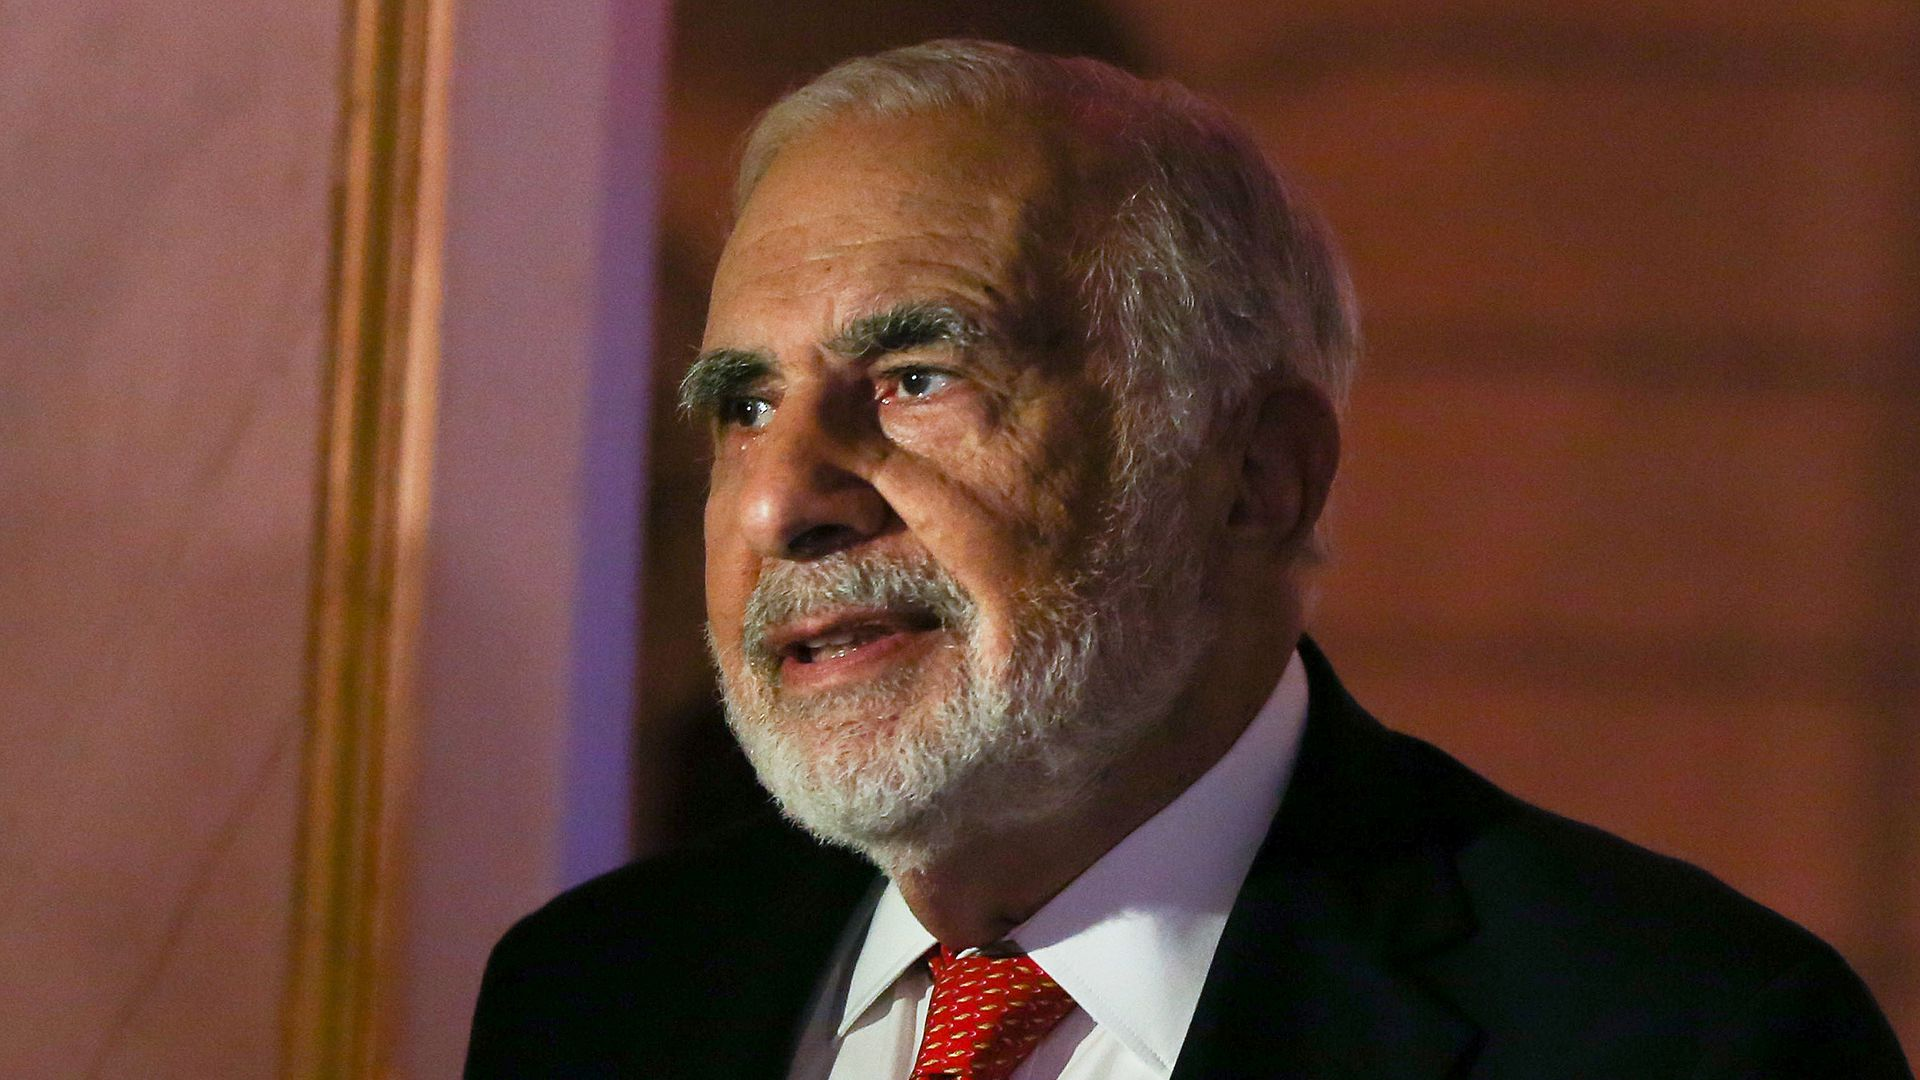 Carl Icahn at a CNBC event.